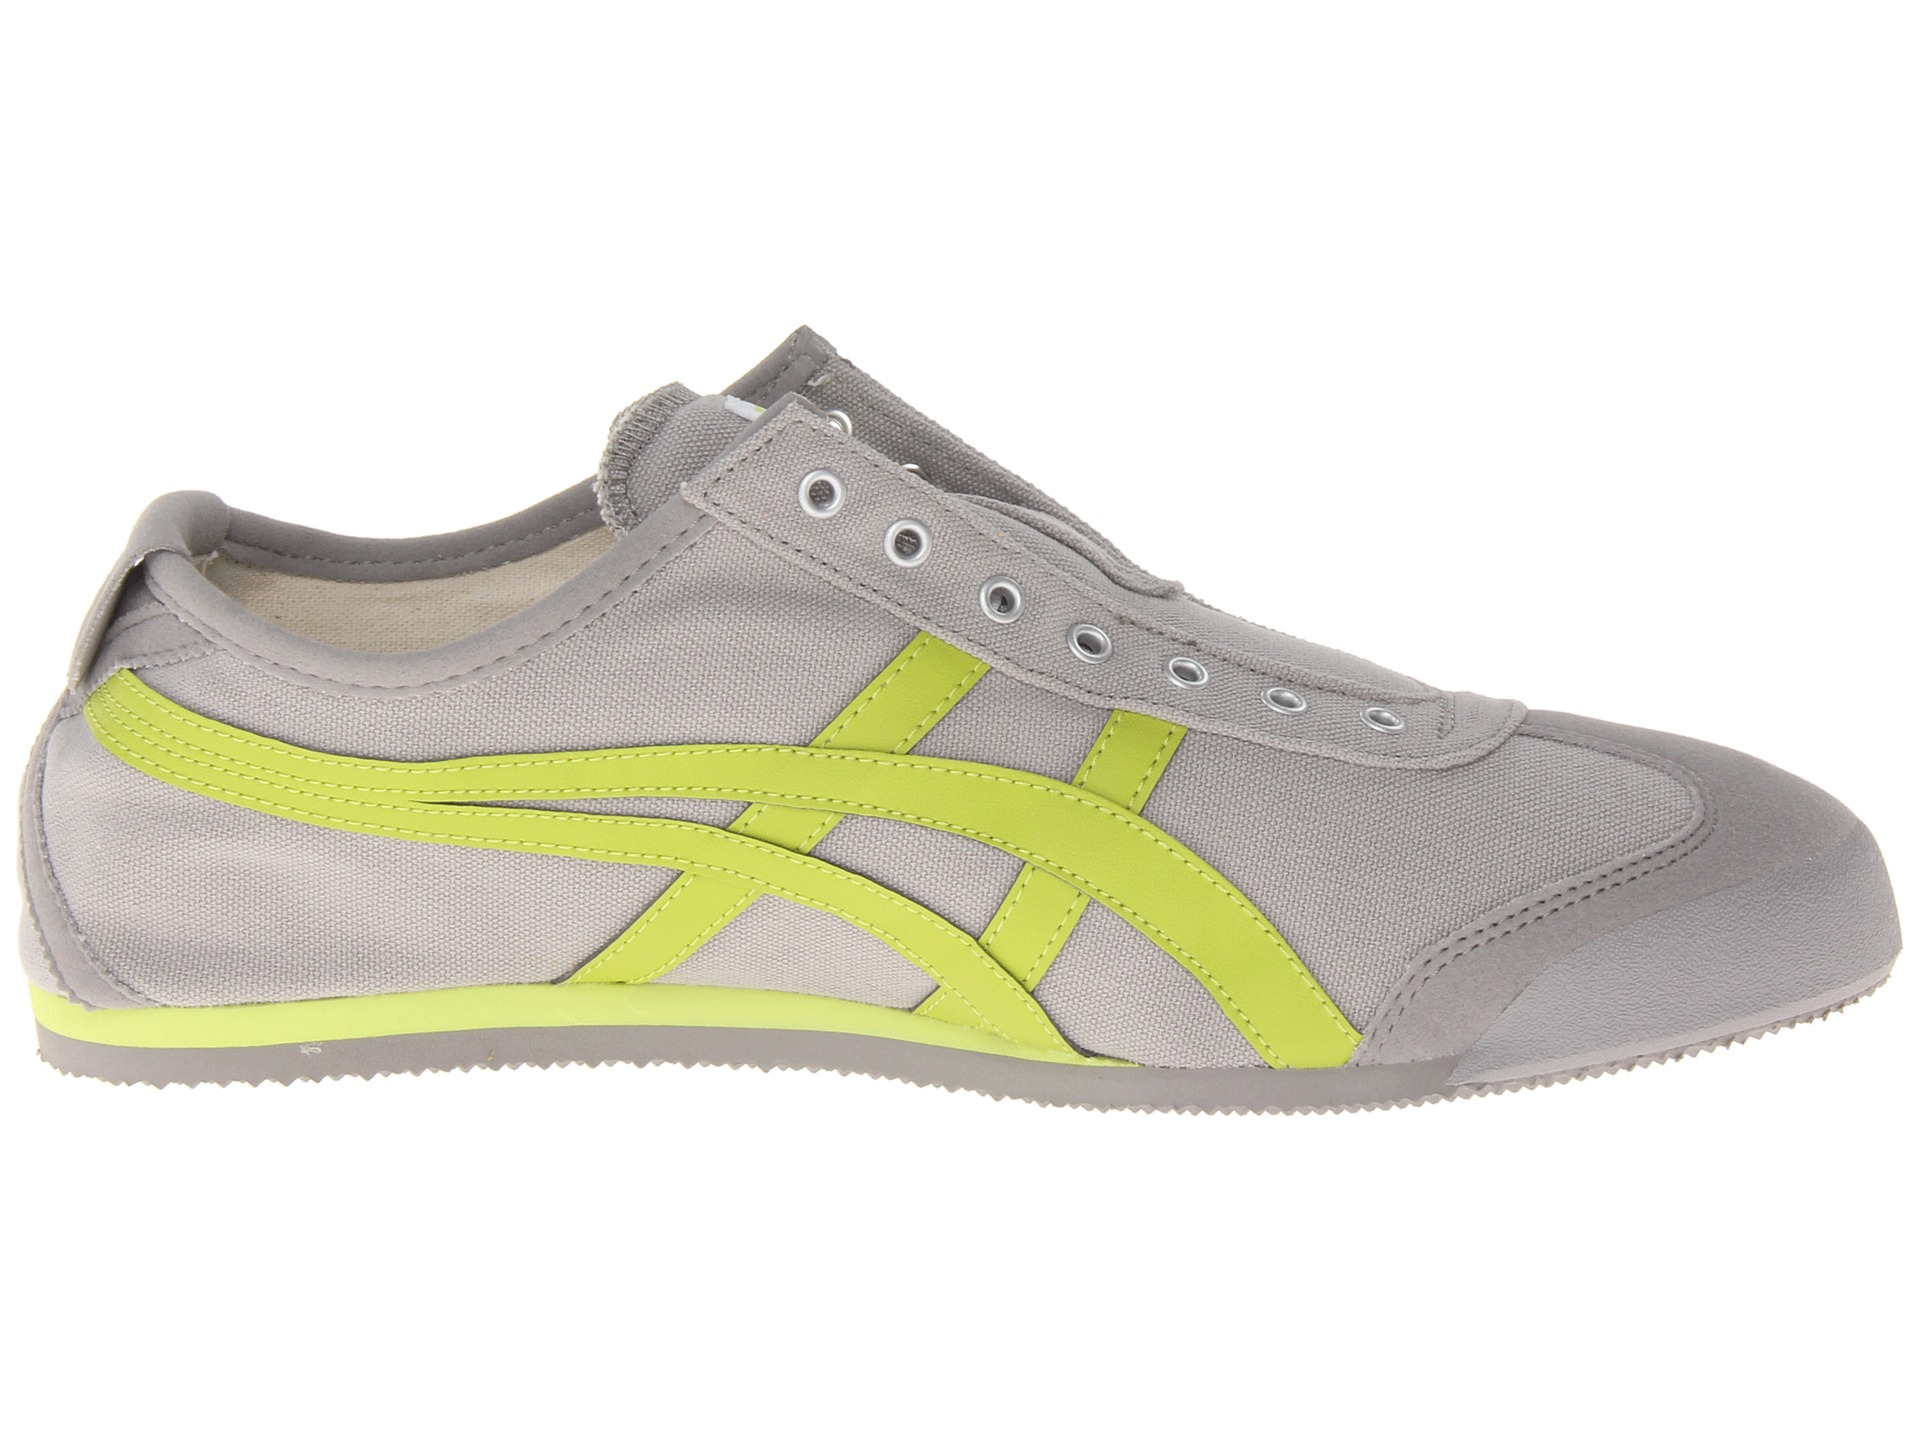 Onitsuka Tiger By Asics Mexico 66 Slip On GreyWhite